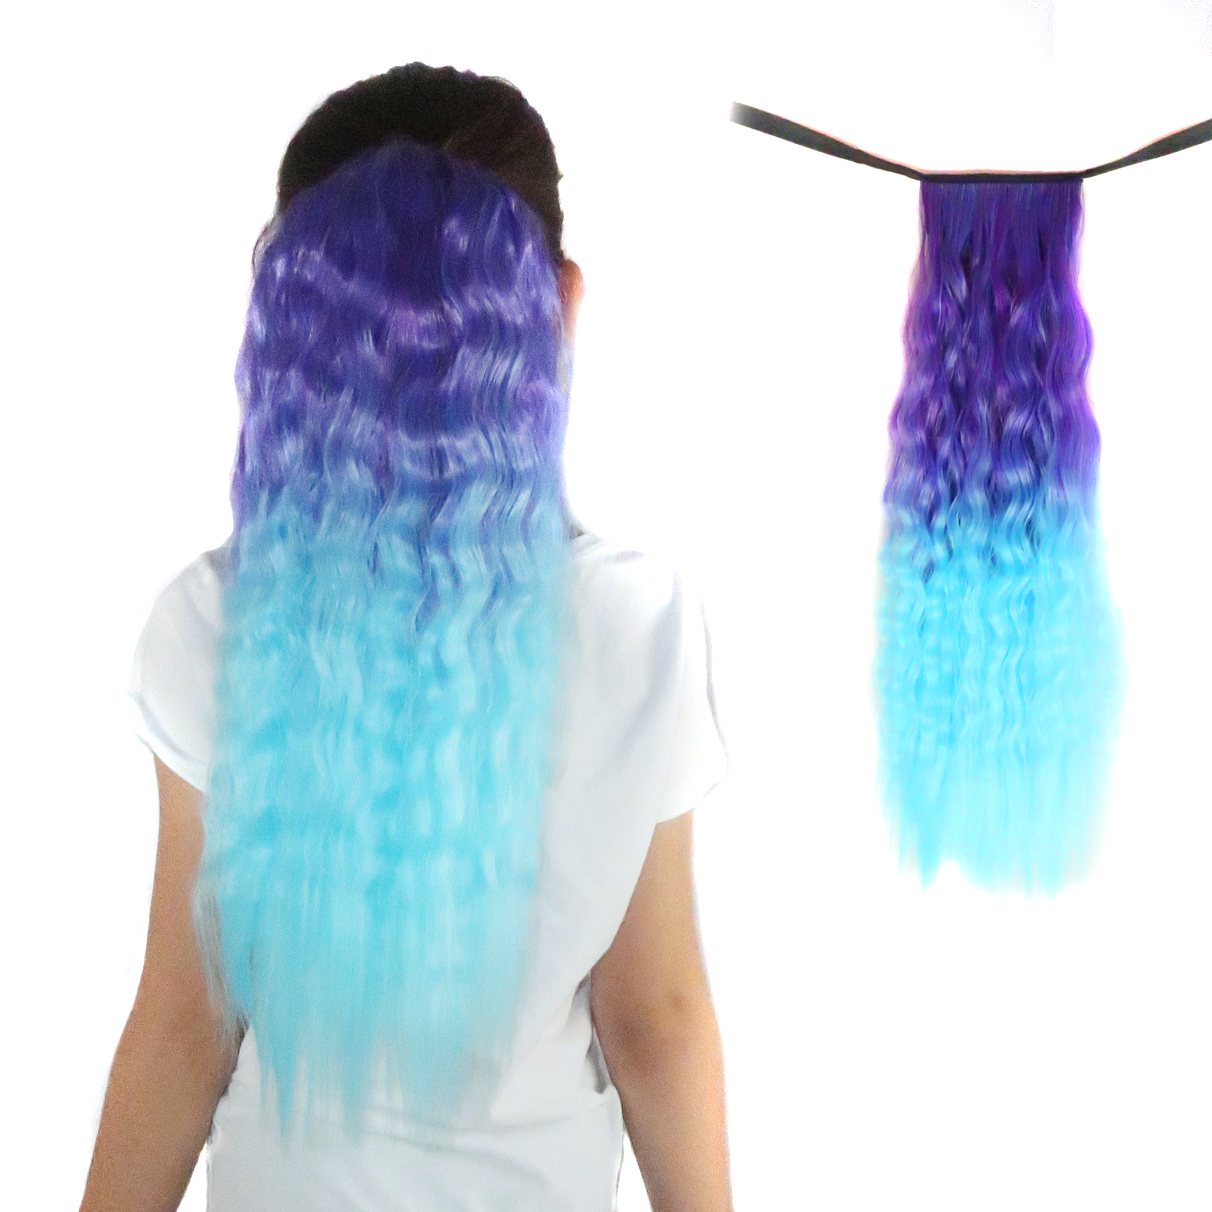 Jellybean Purple/Aqua Wavy Ombré Ponytail Hair Extensions